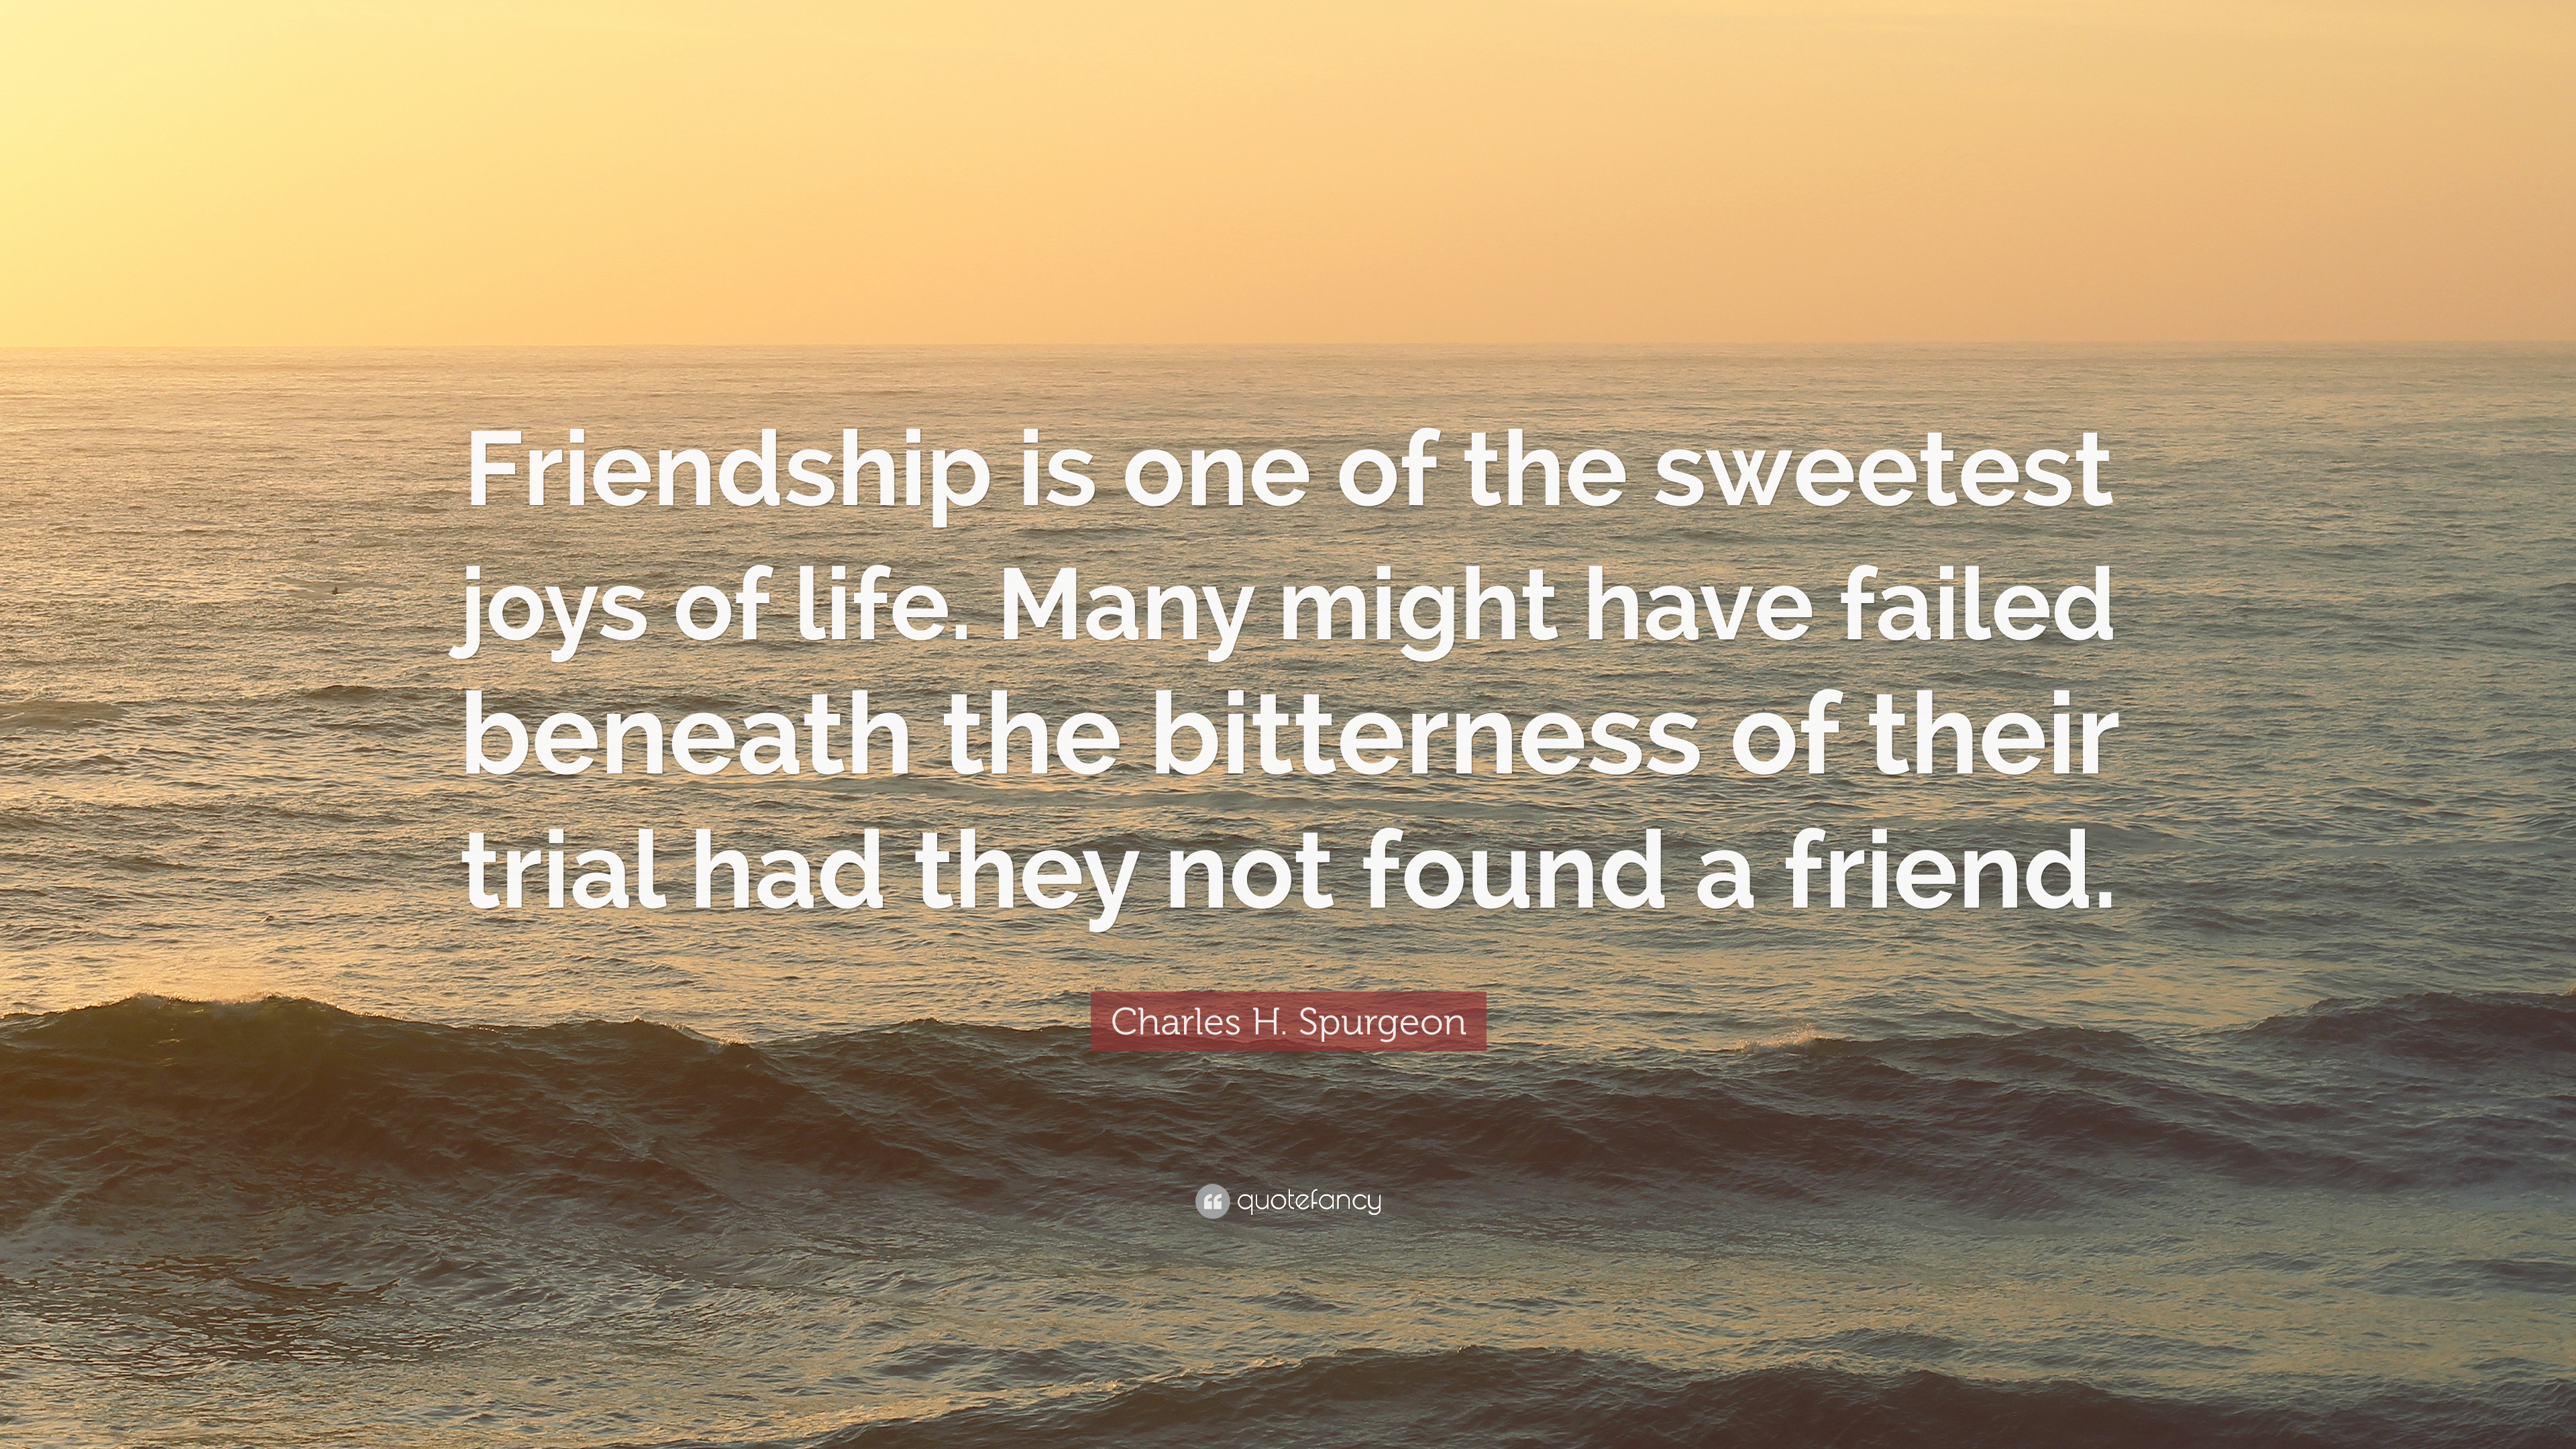 "Quotes About Friendship Pictures Charles Hspurgeon Quote ""Friendship Is One Of The Sweetest Joys"